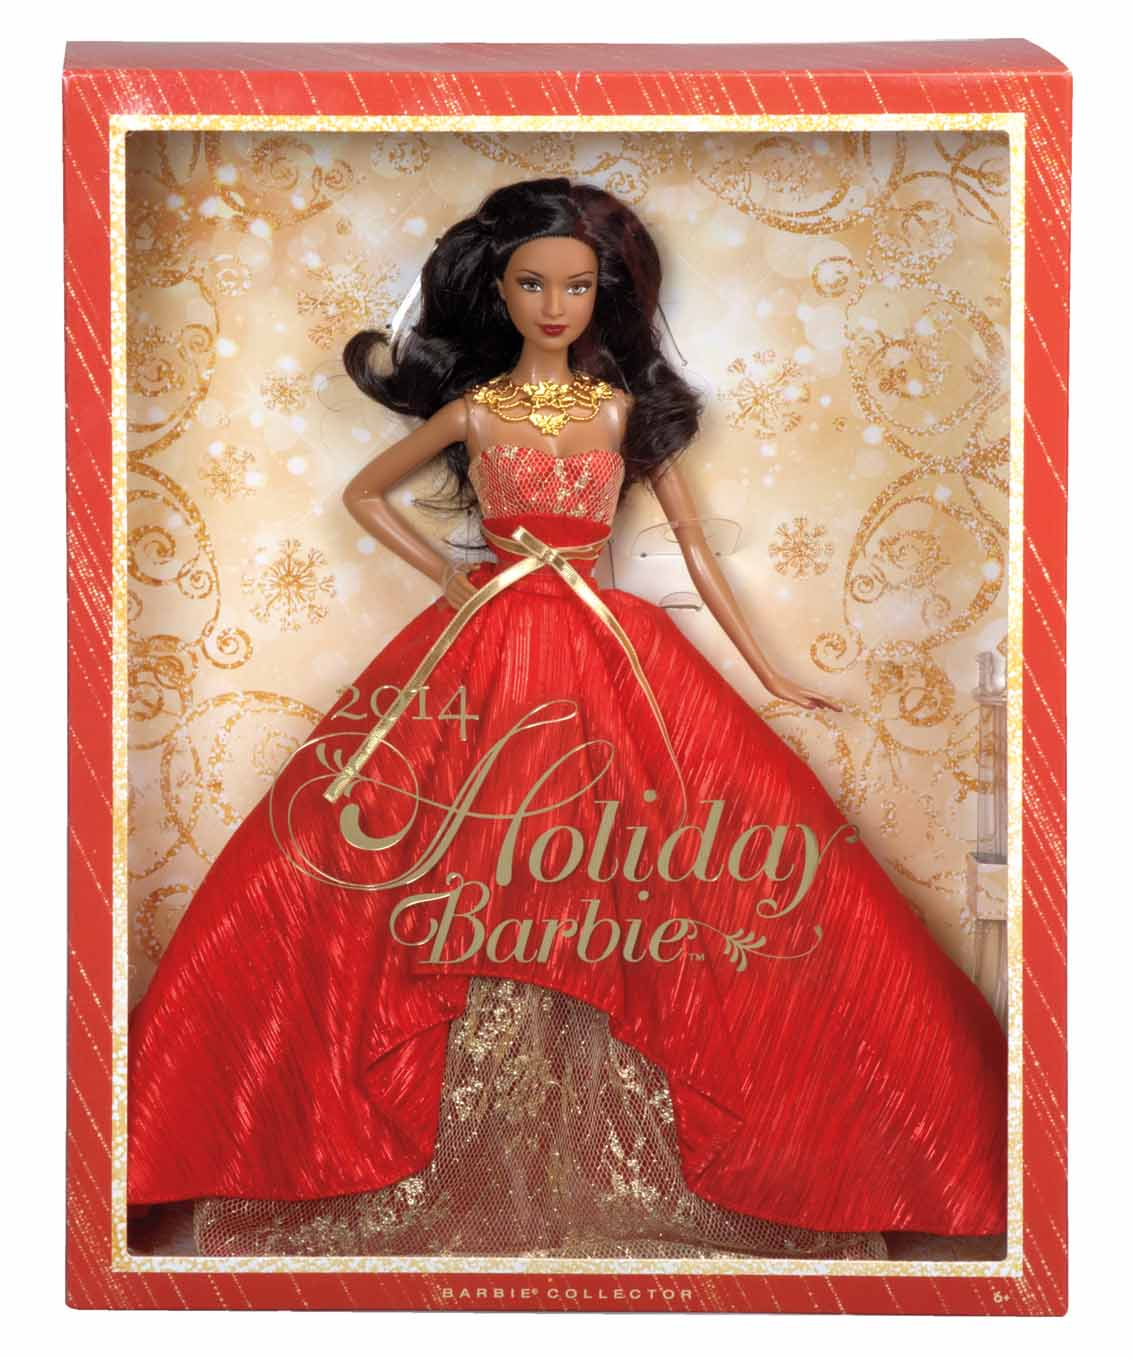 Barbie Holiday African-American Doll